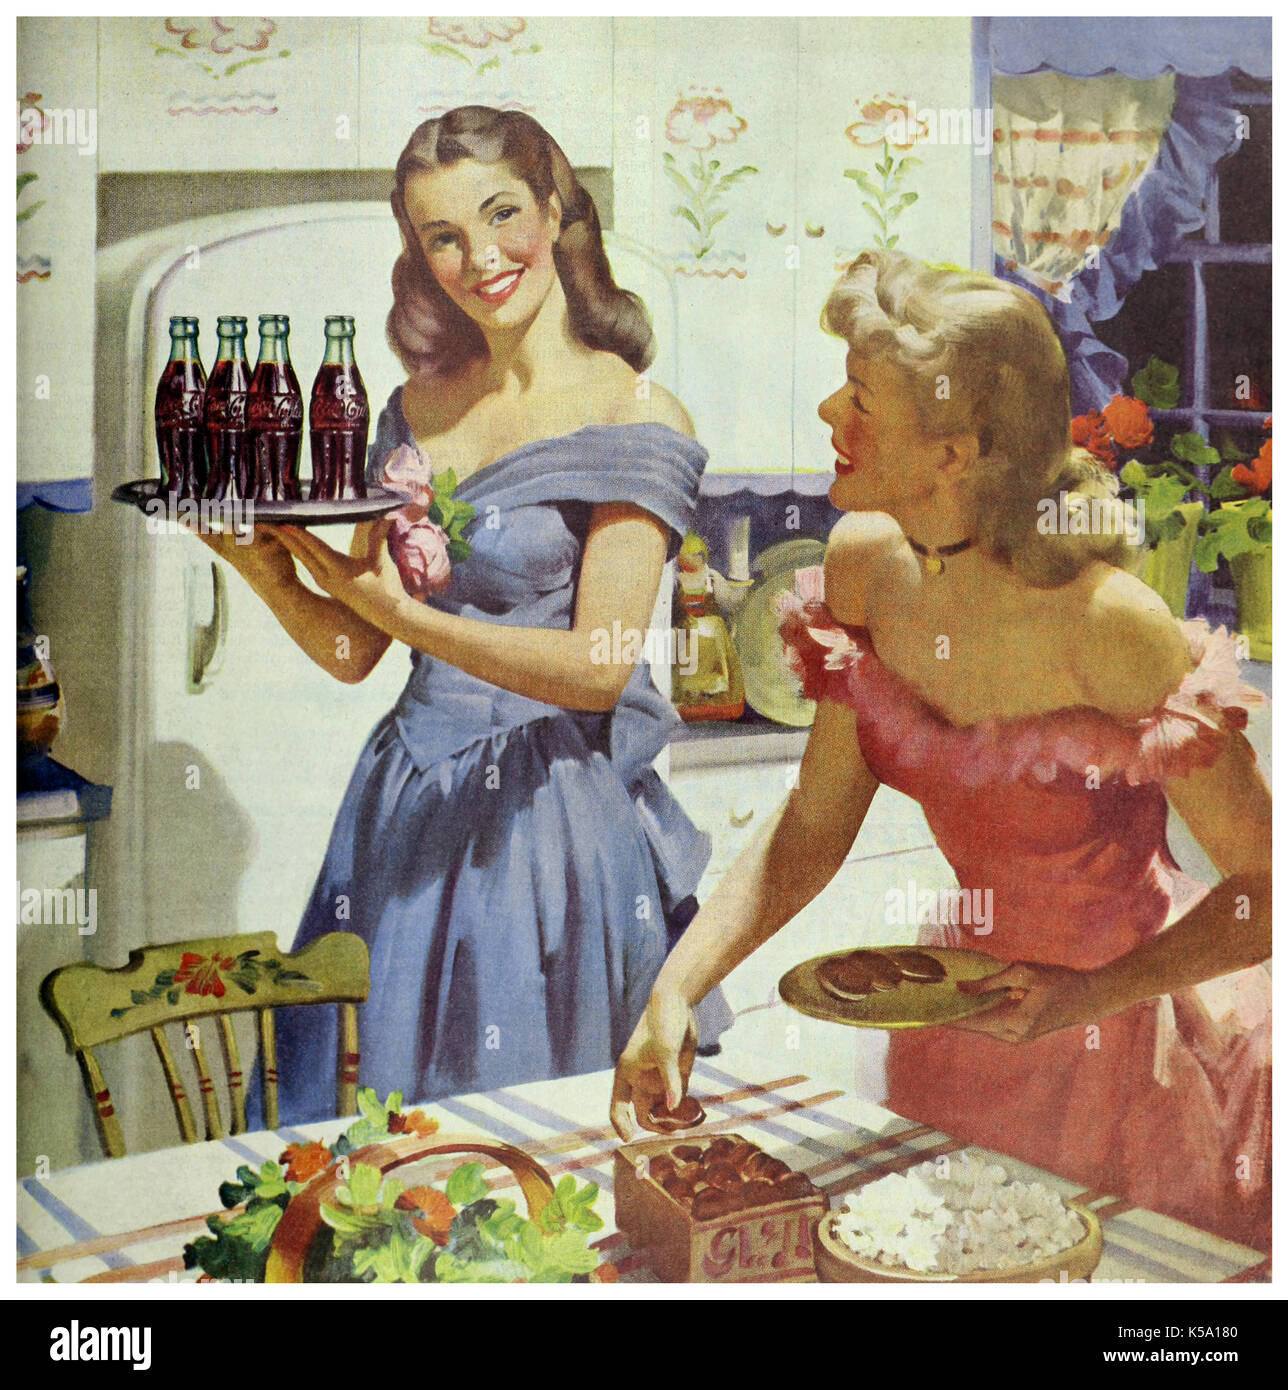 "Retro Woman In Kitchen: VINTAGE Coca Cola ADVERTISEMENT 1948 ""Hospitality In Your"